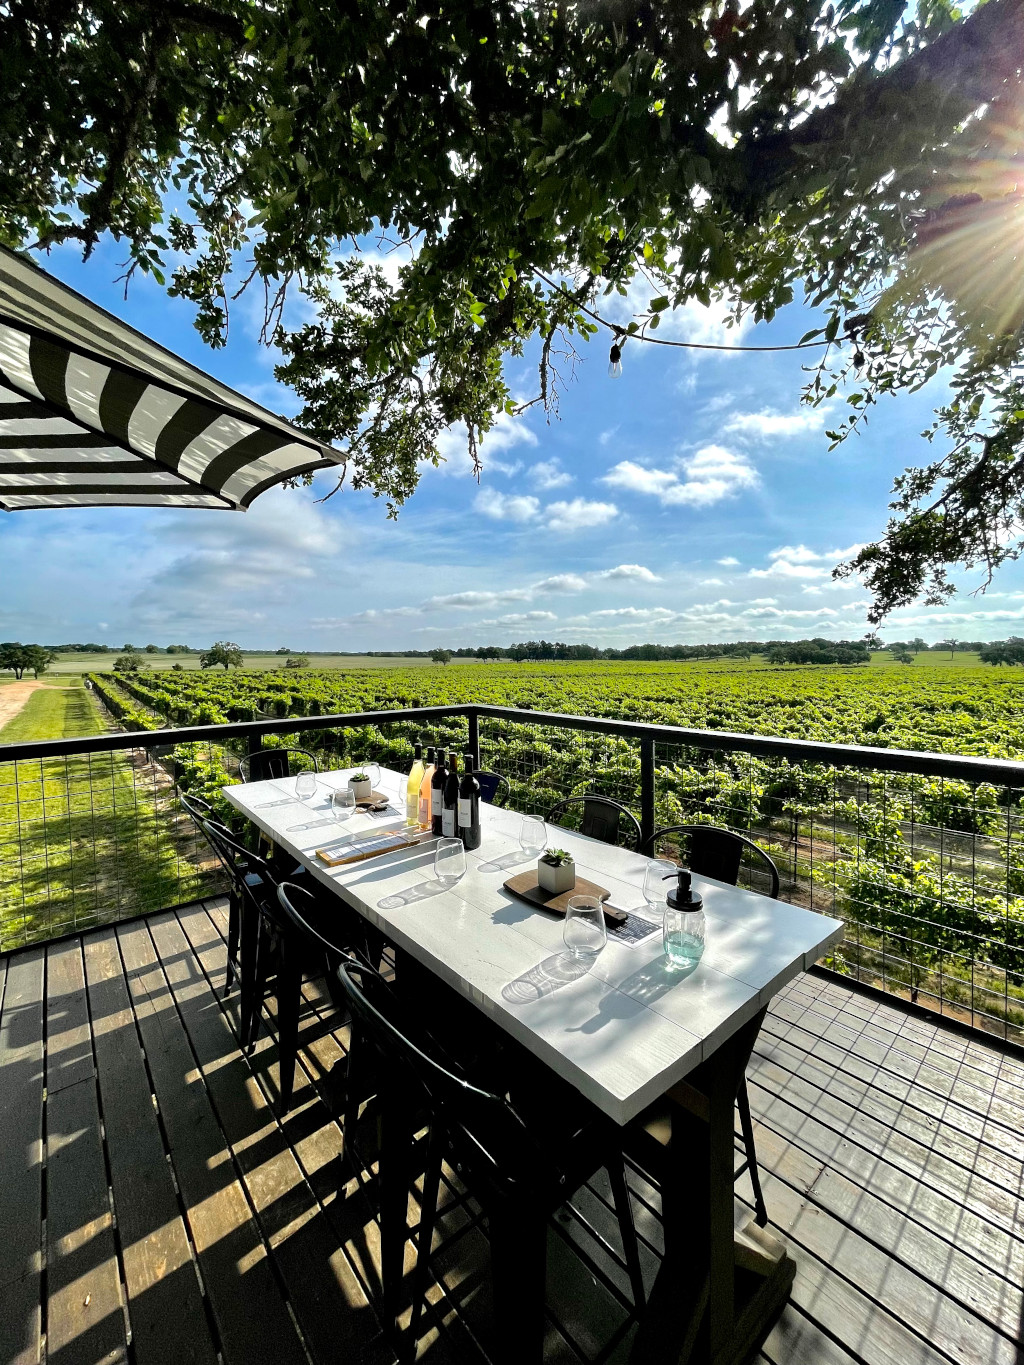 An outdoor patio with a table and chairs overlooking green vineyards.